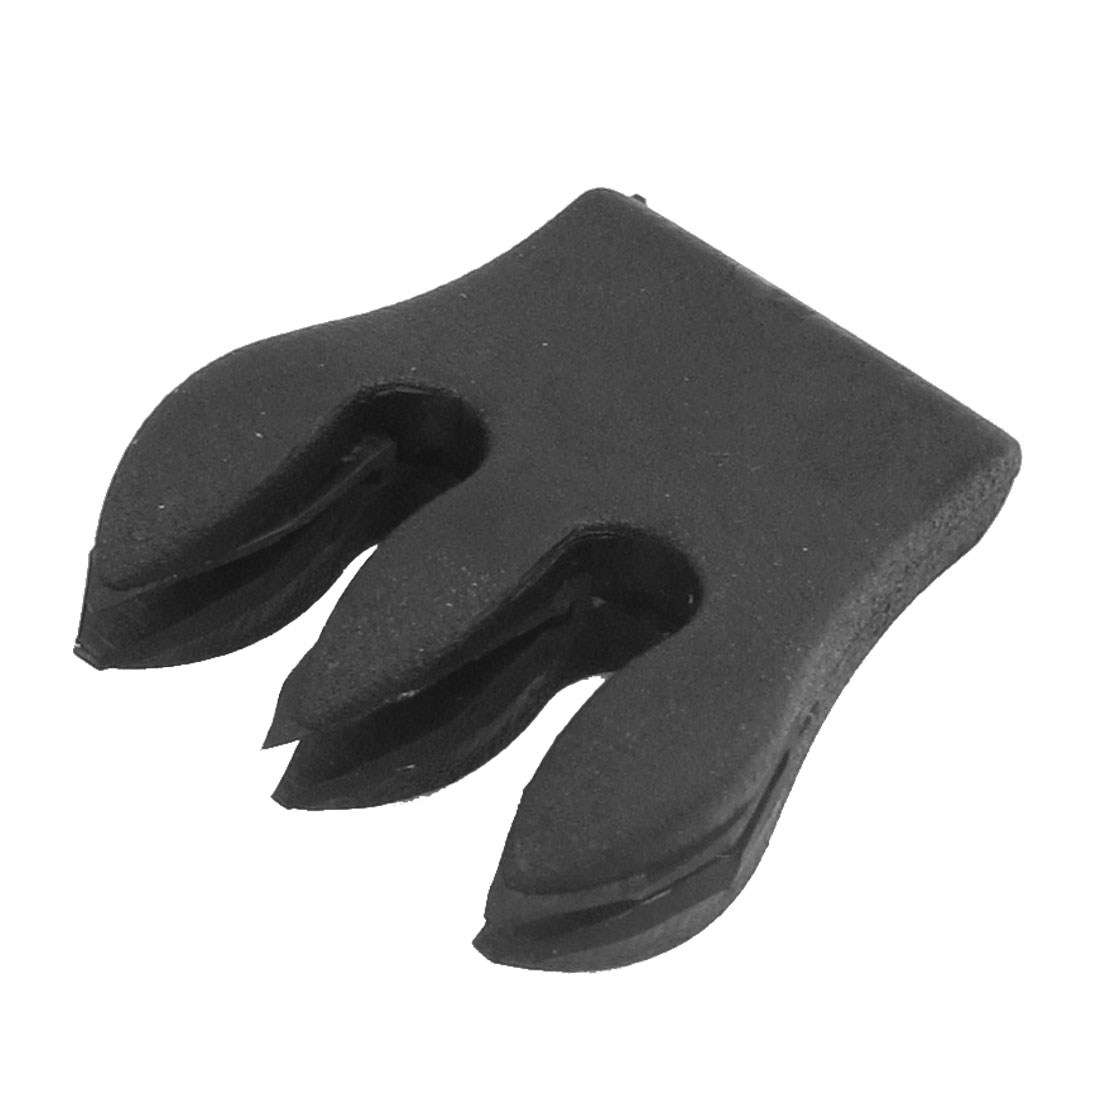 Black Double Grooves Rubber Cello Mute Musical Sordine by Unique-Bargains